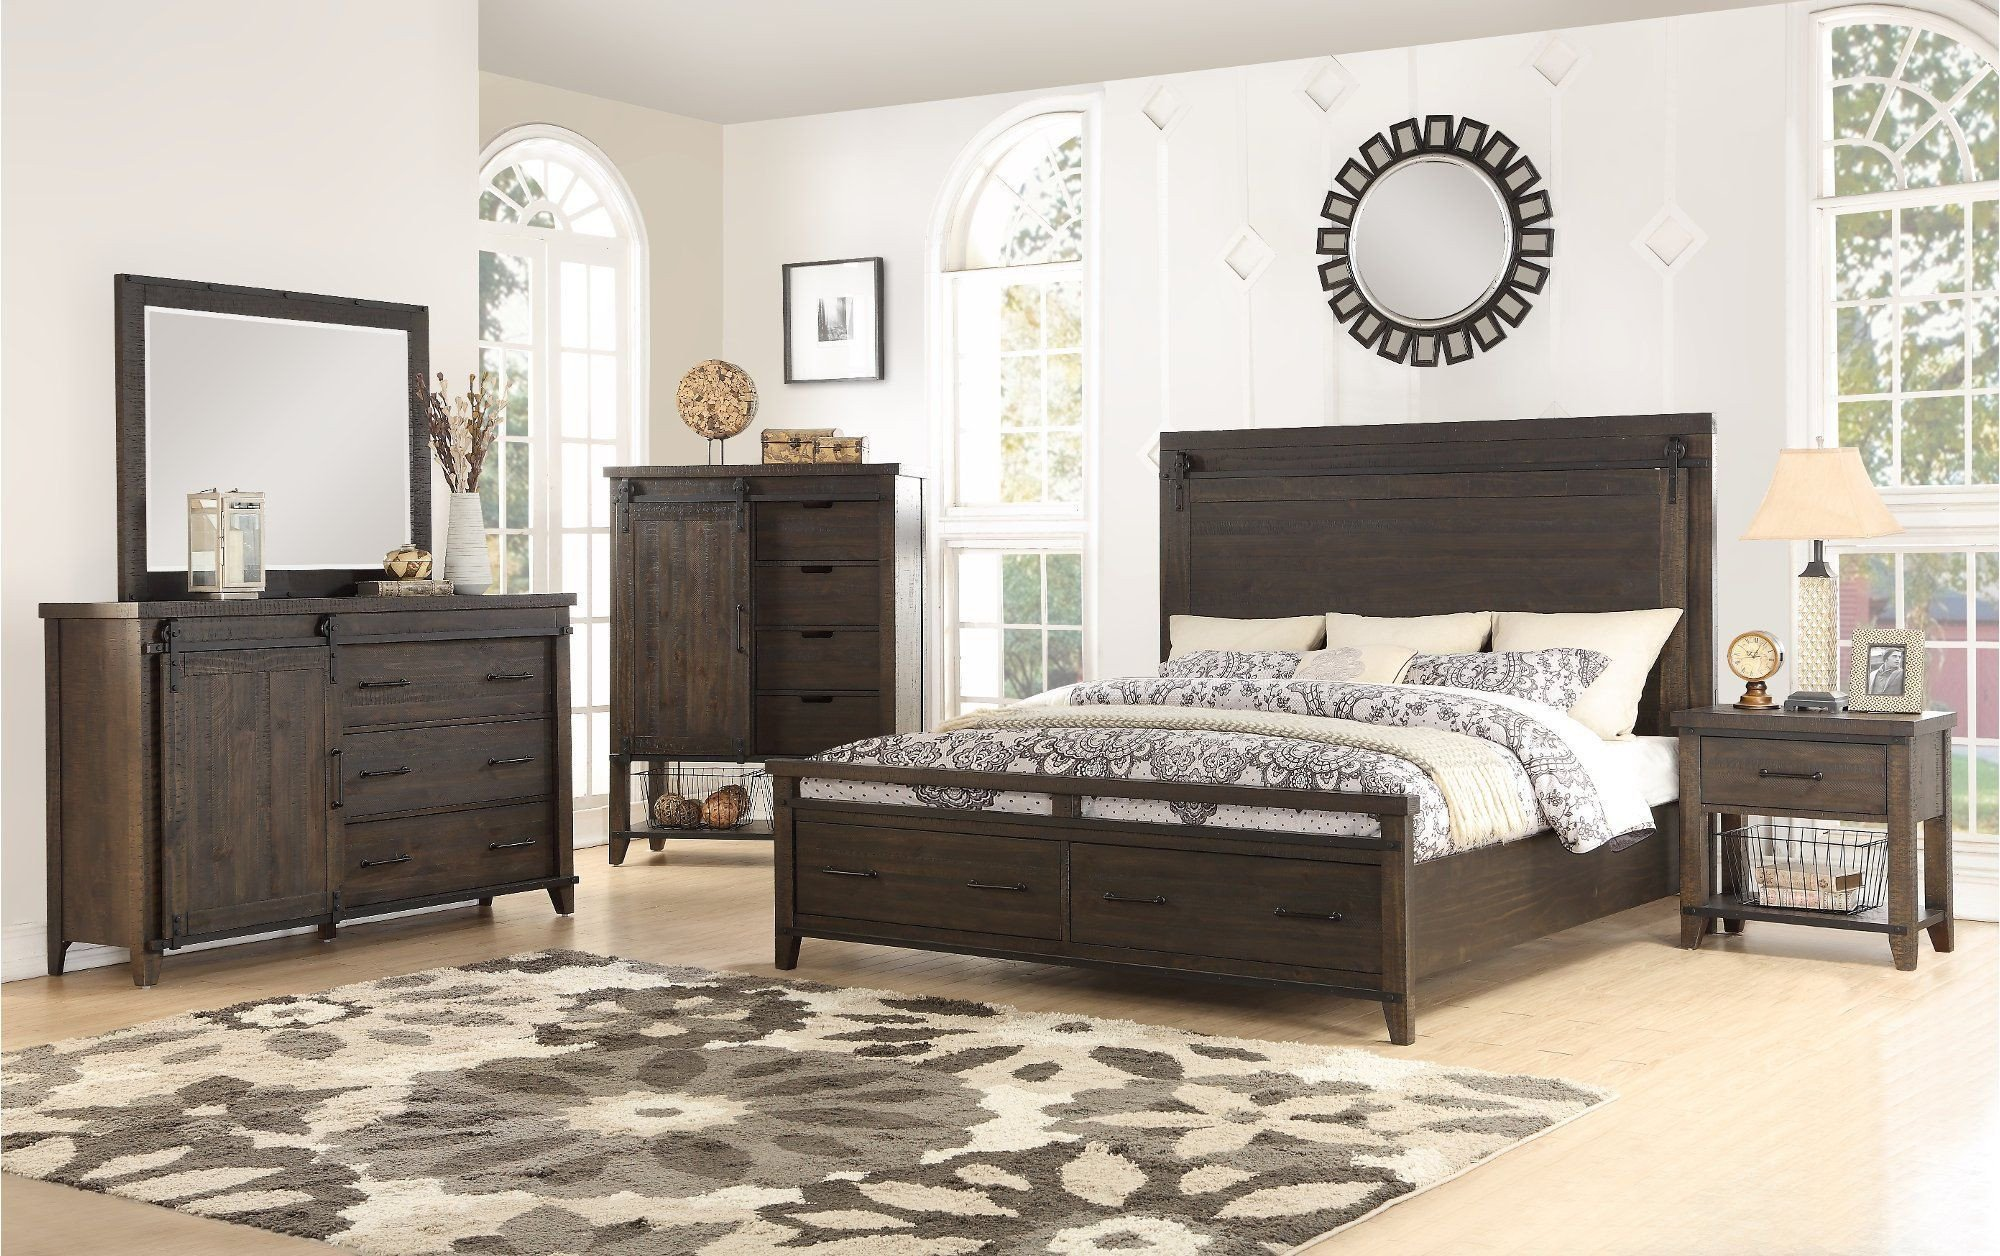 Rustic King Bedroom Set Awesome Rustic Contemporary Brown 4 Piece King Bedroom Set Montana